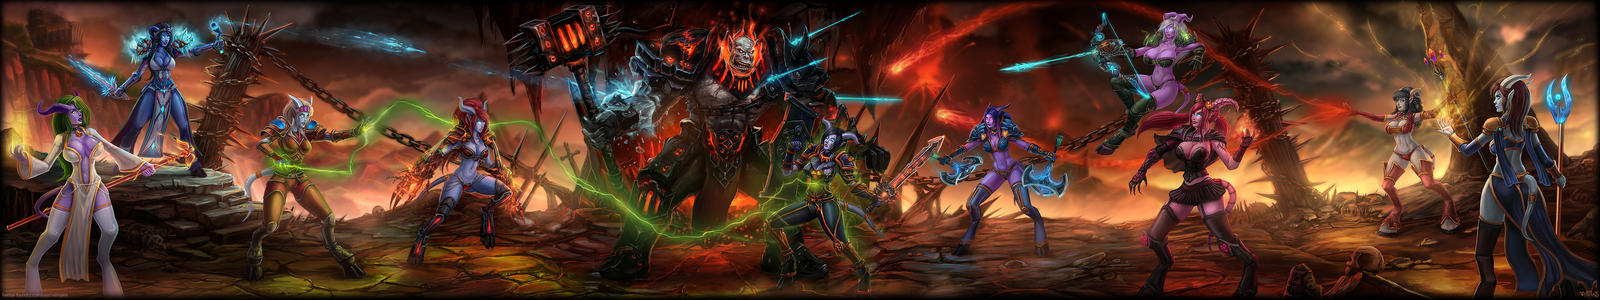 Blackhand Raid by vempirick